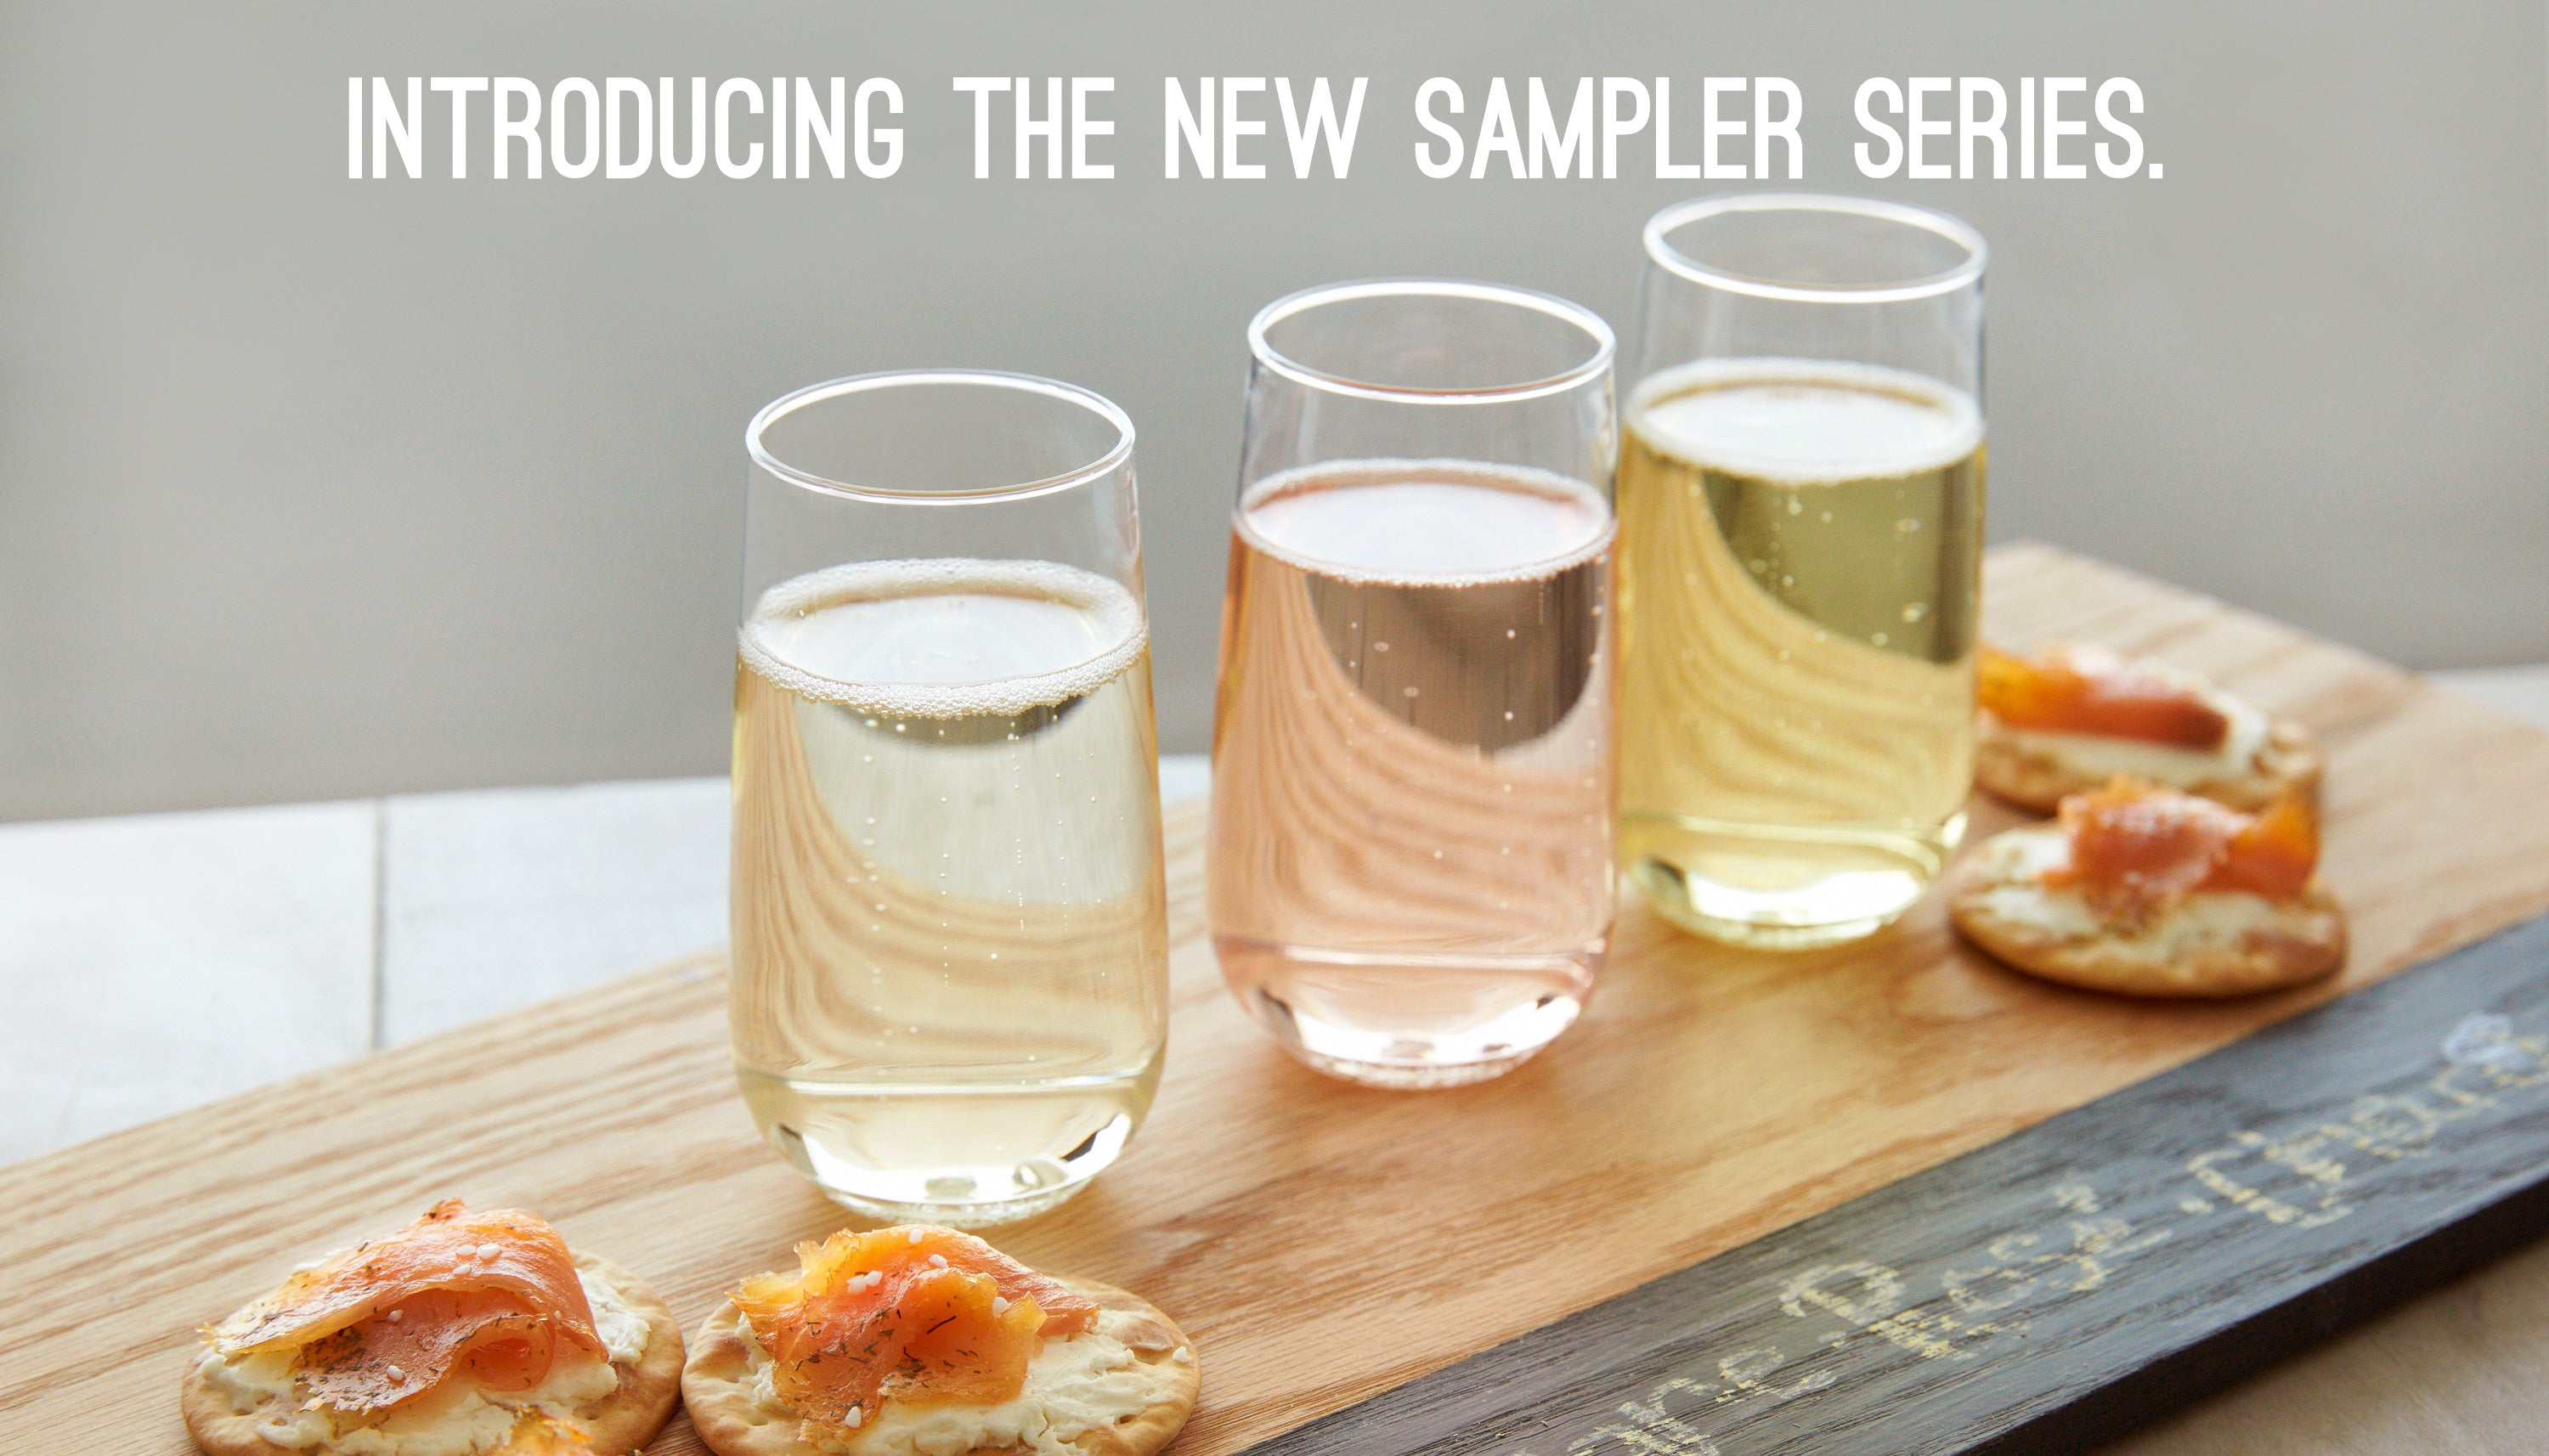 Introducting Sampler Series